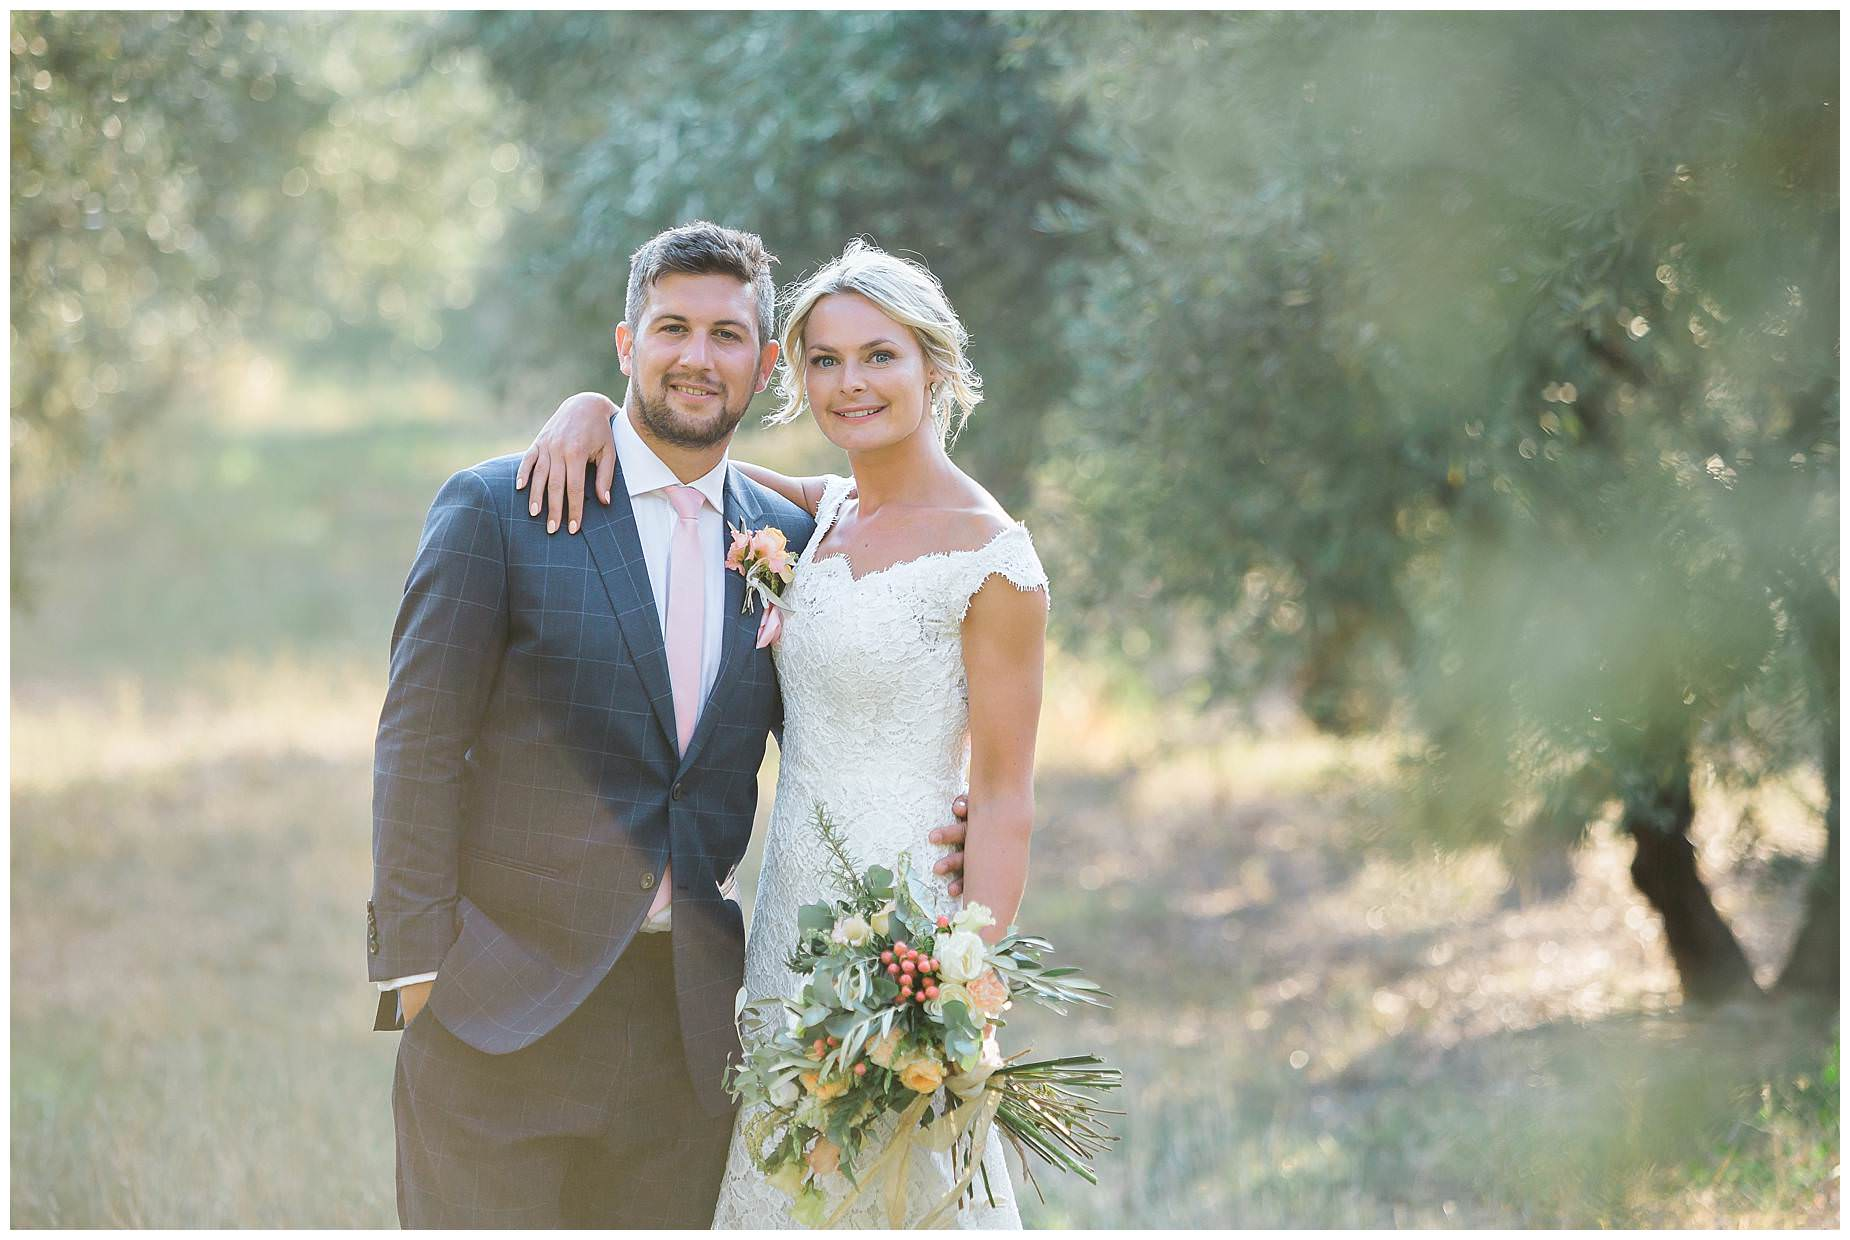 Domaine Saint Germain wedding